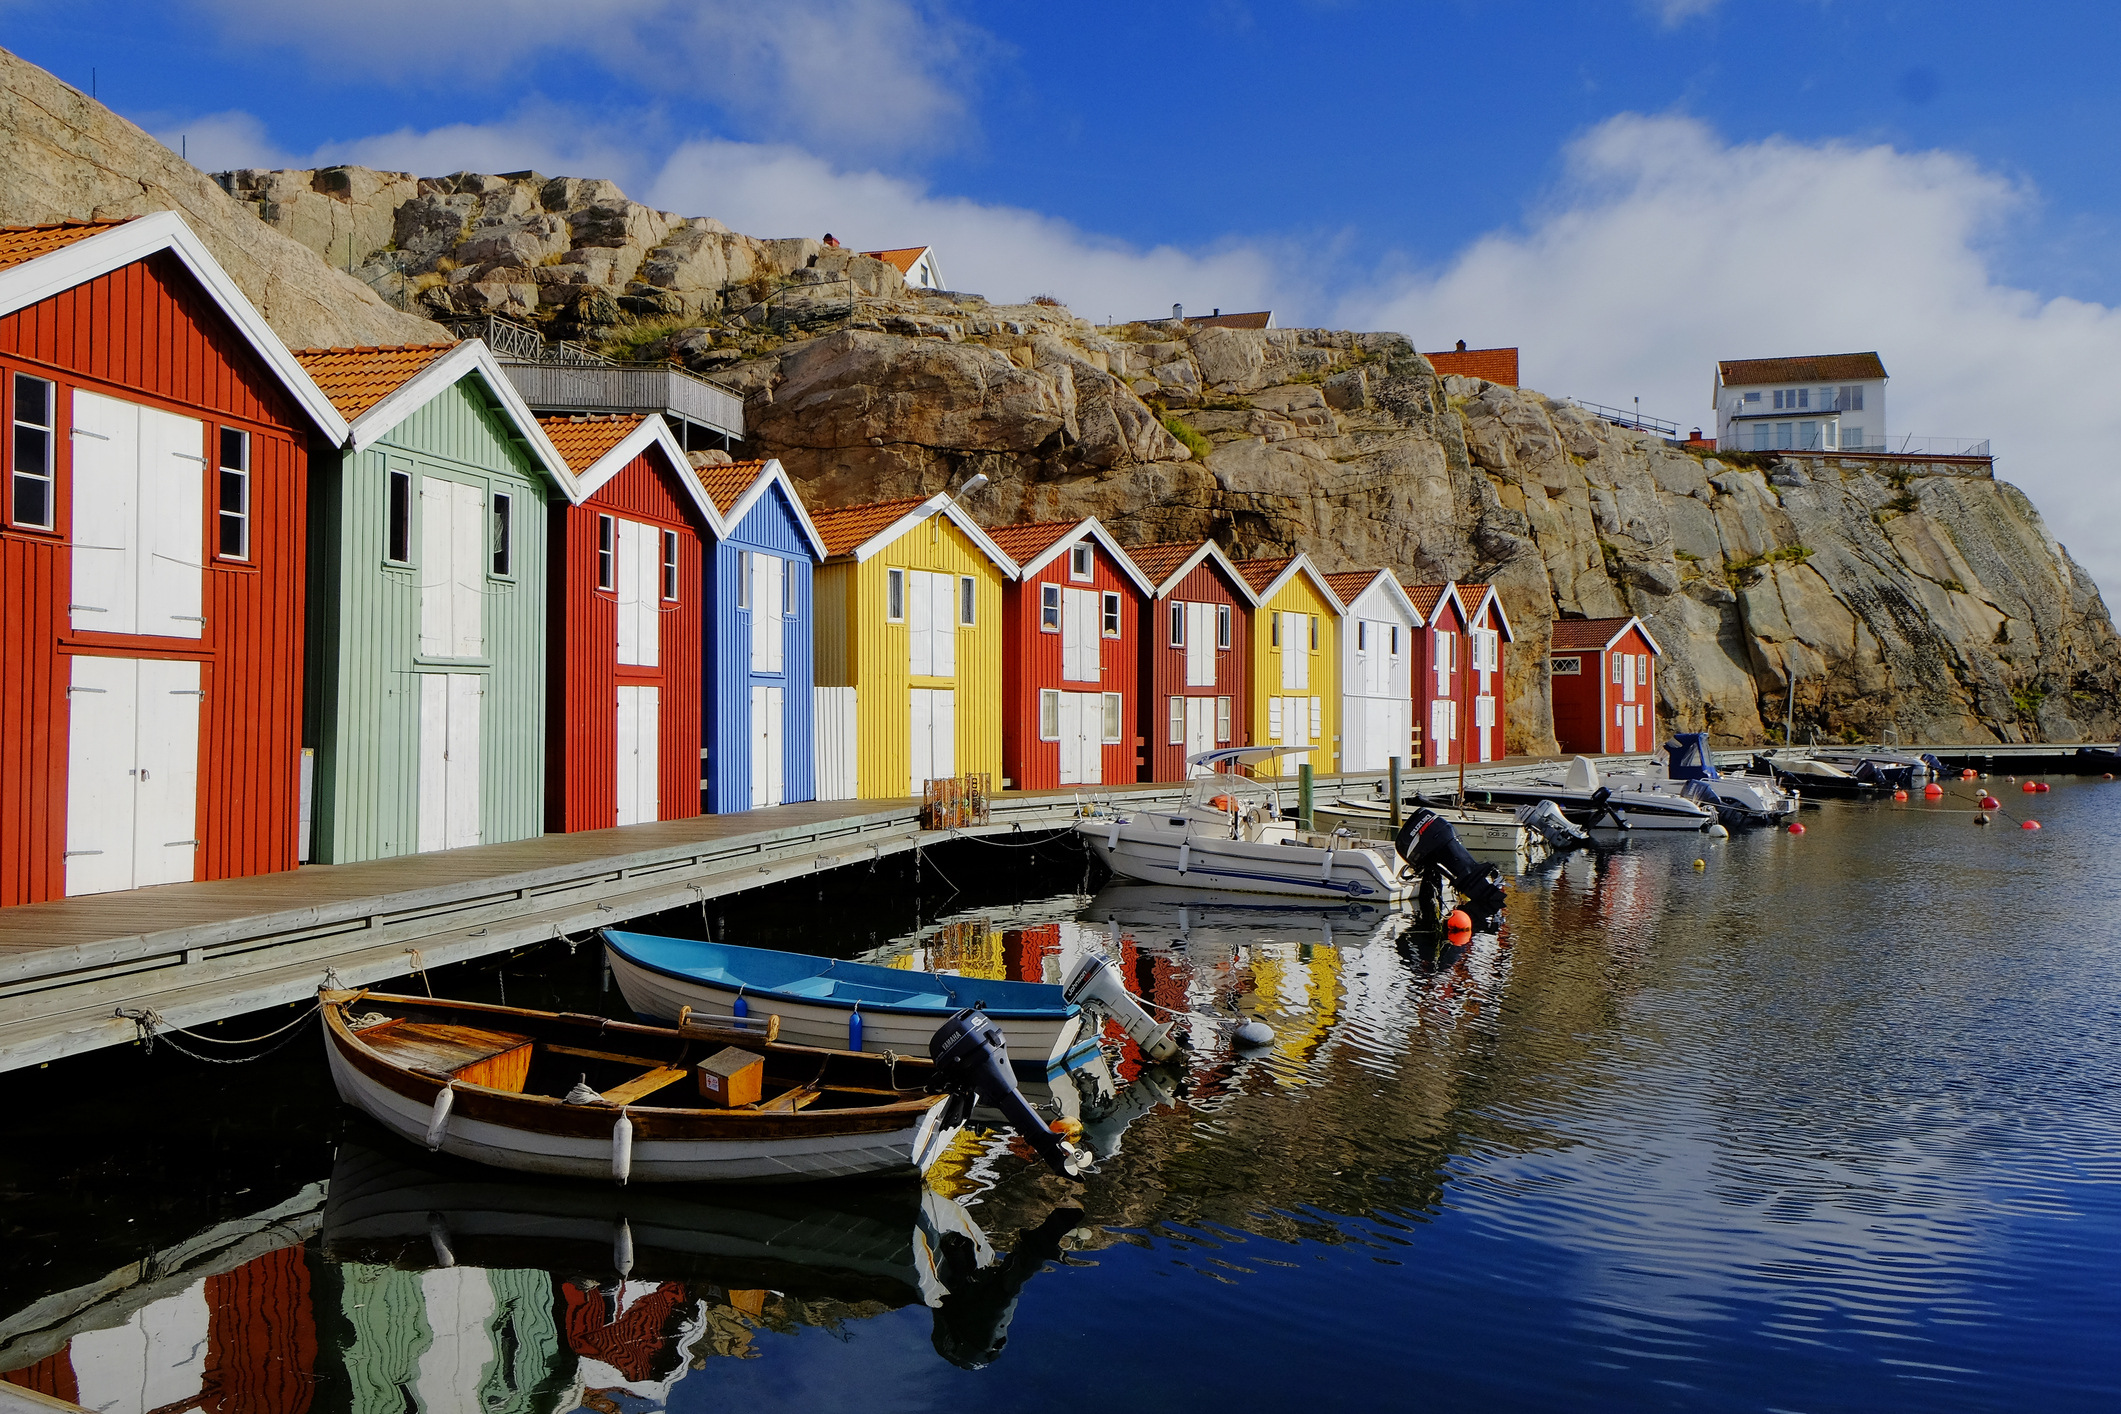 Fishing huts in West Sweden.